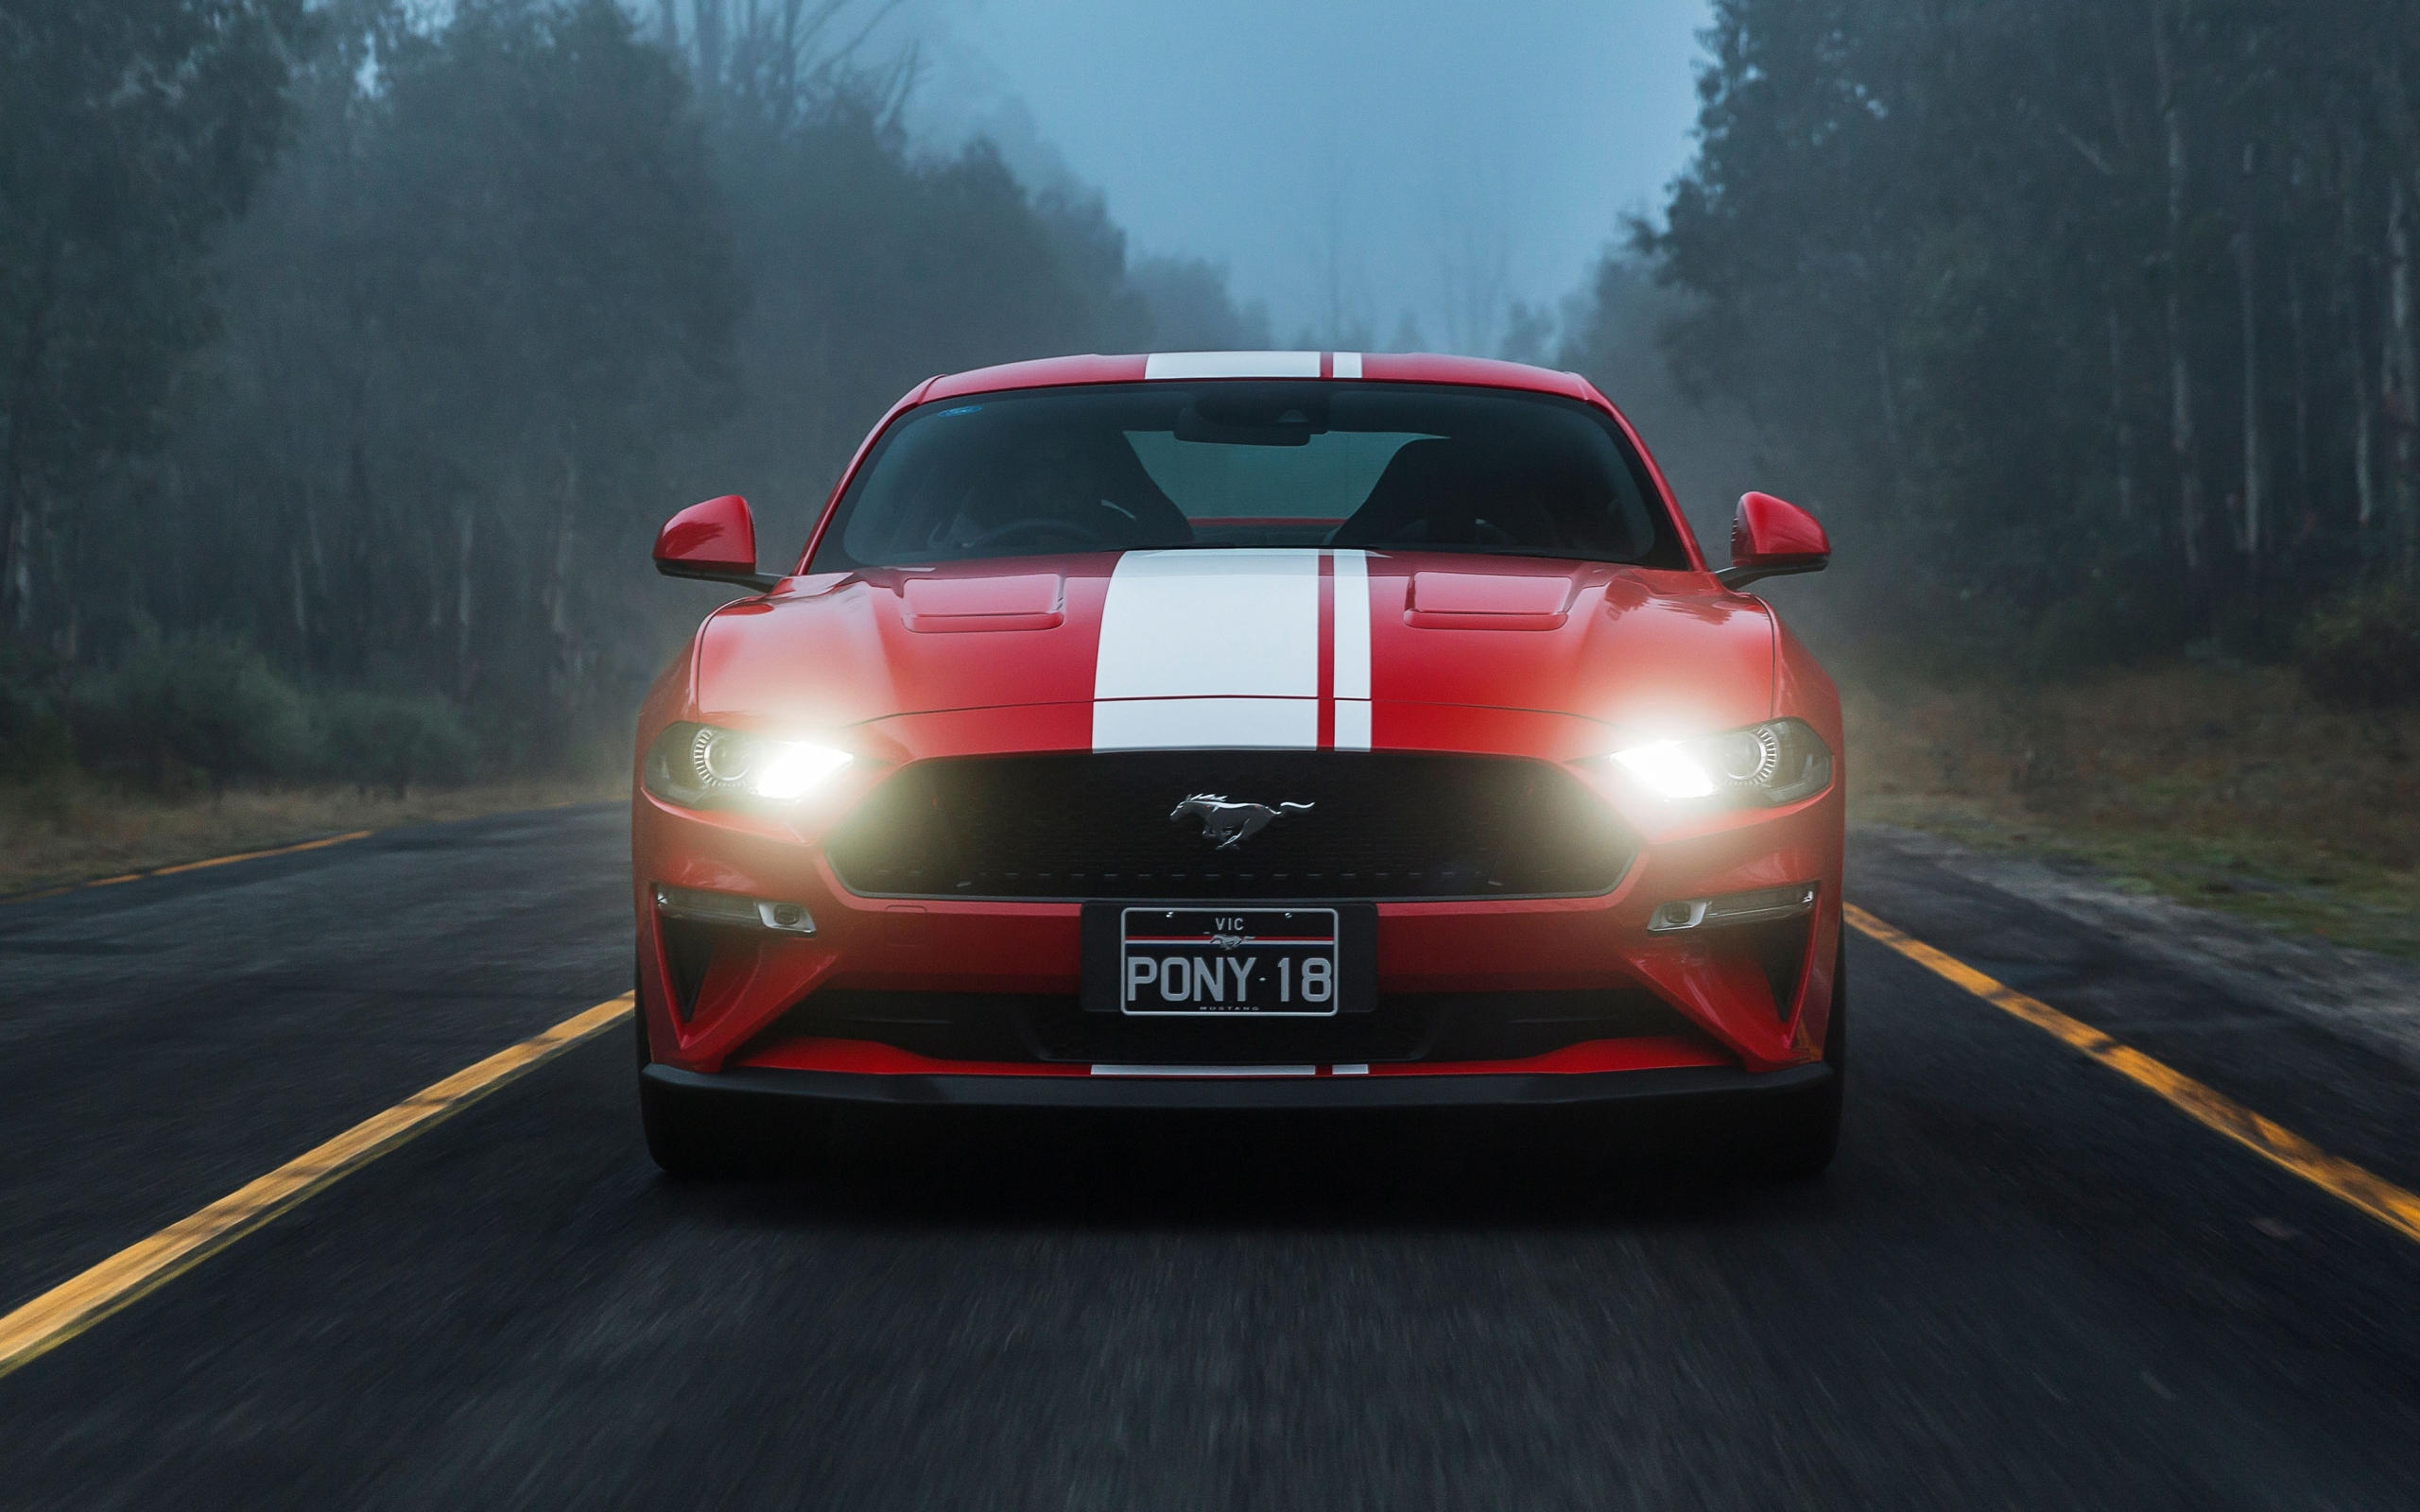 Wallpaper of Ford Mustang GT, MuscleCar, Red, Car, Vehicle background & HD image